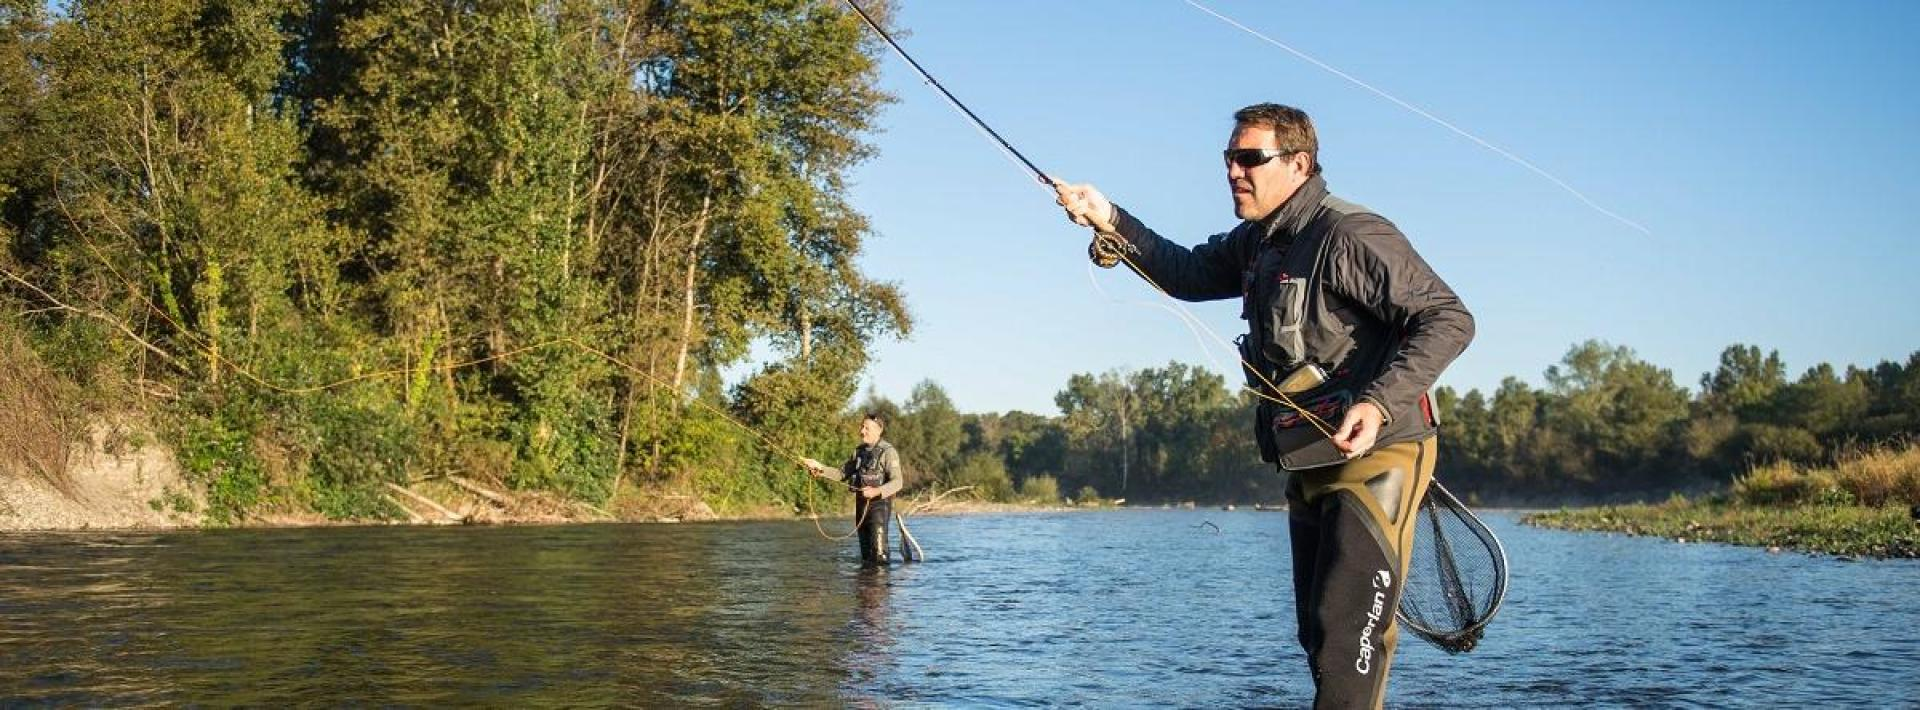 What Equipment Do You Need To Start Out Trout Fishing?